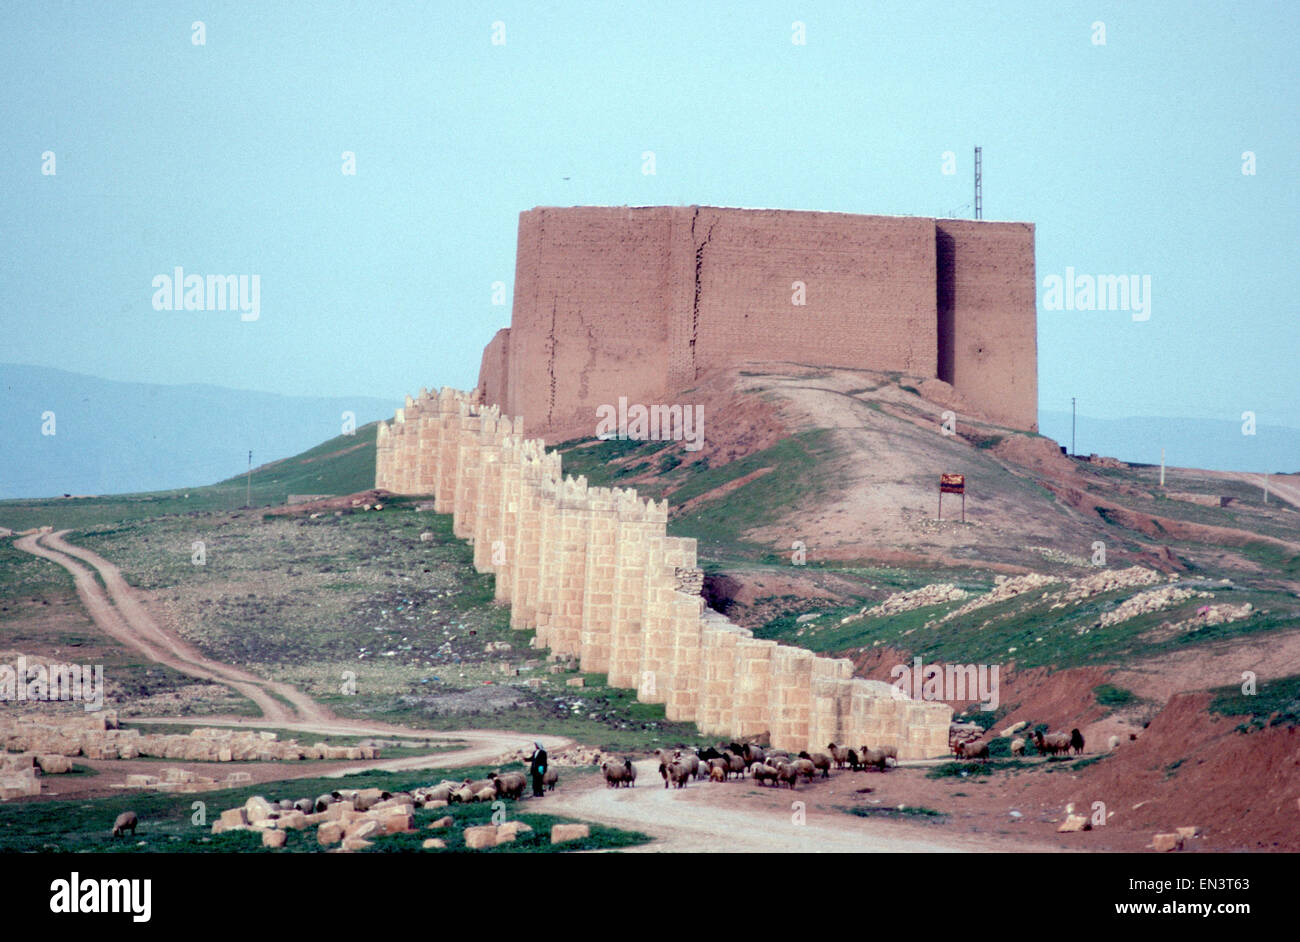 Historic archaeological ruined Assyrian city of Nineveh, a ...